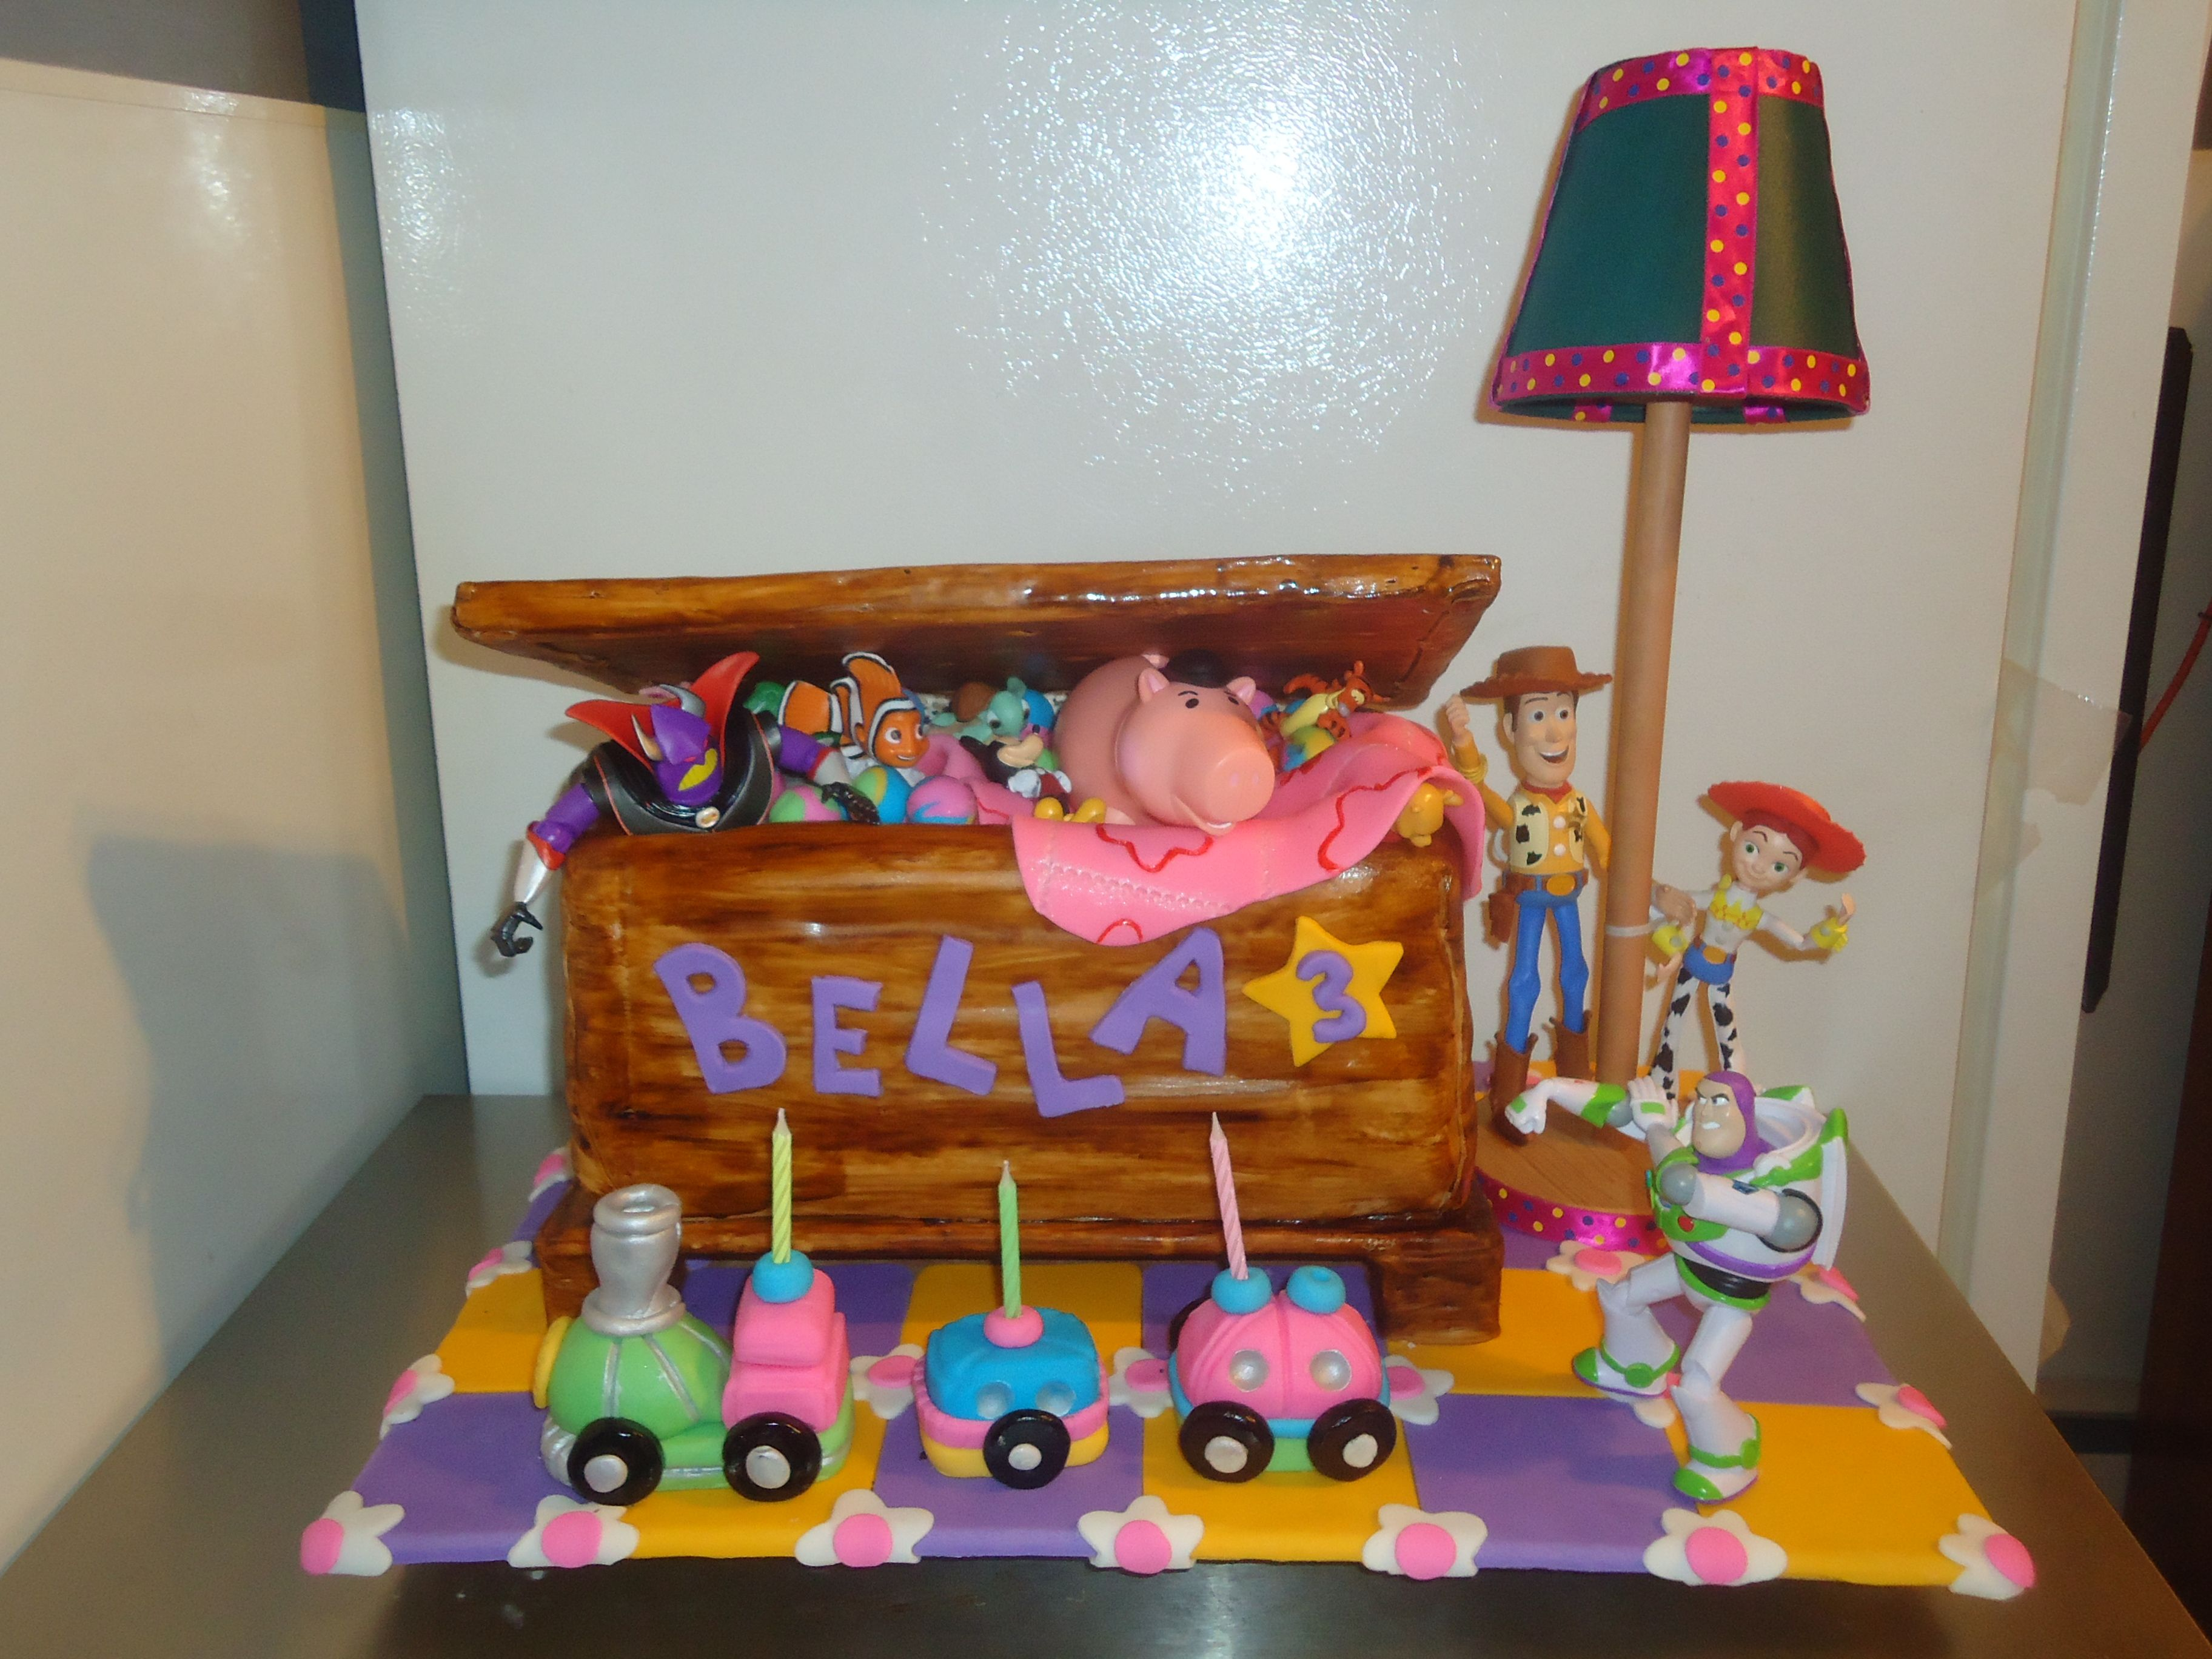 Toy Story Cake The Toy Box Is Cake The Train Lit Up As Well As The Lamp Toy Story Cakes Train Light Cake Designs